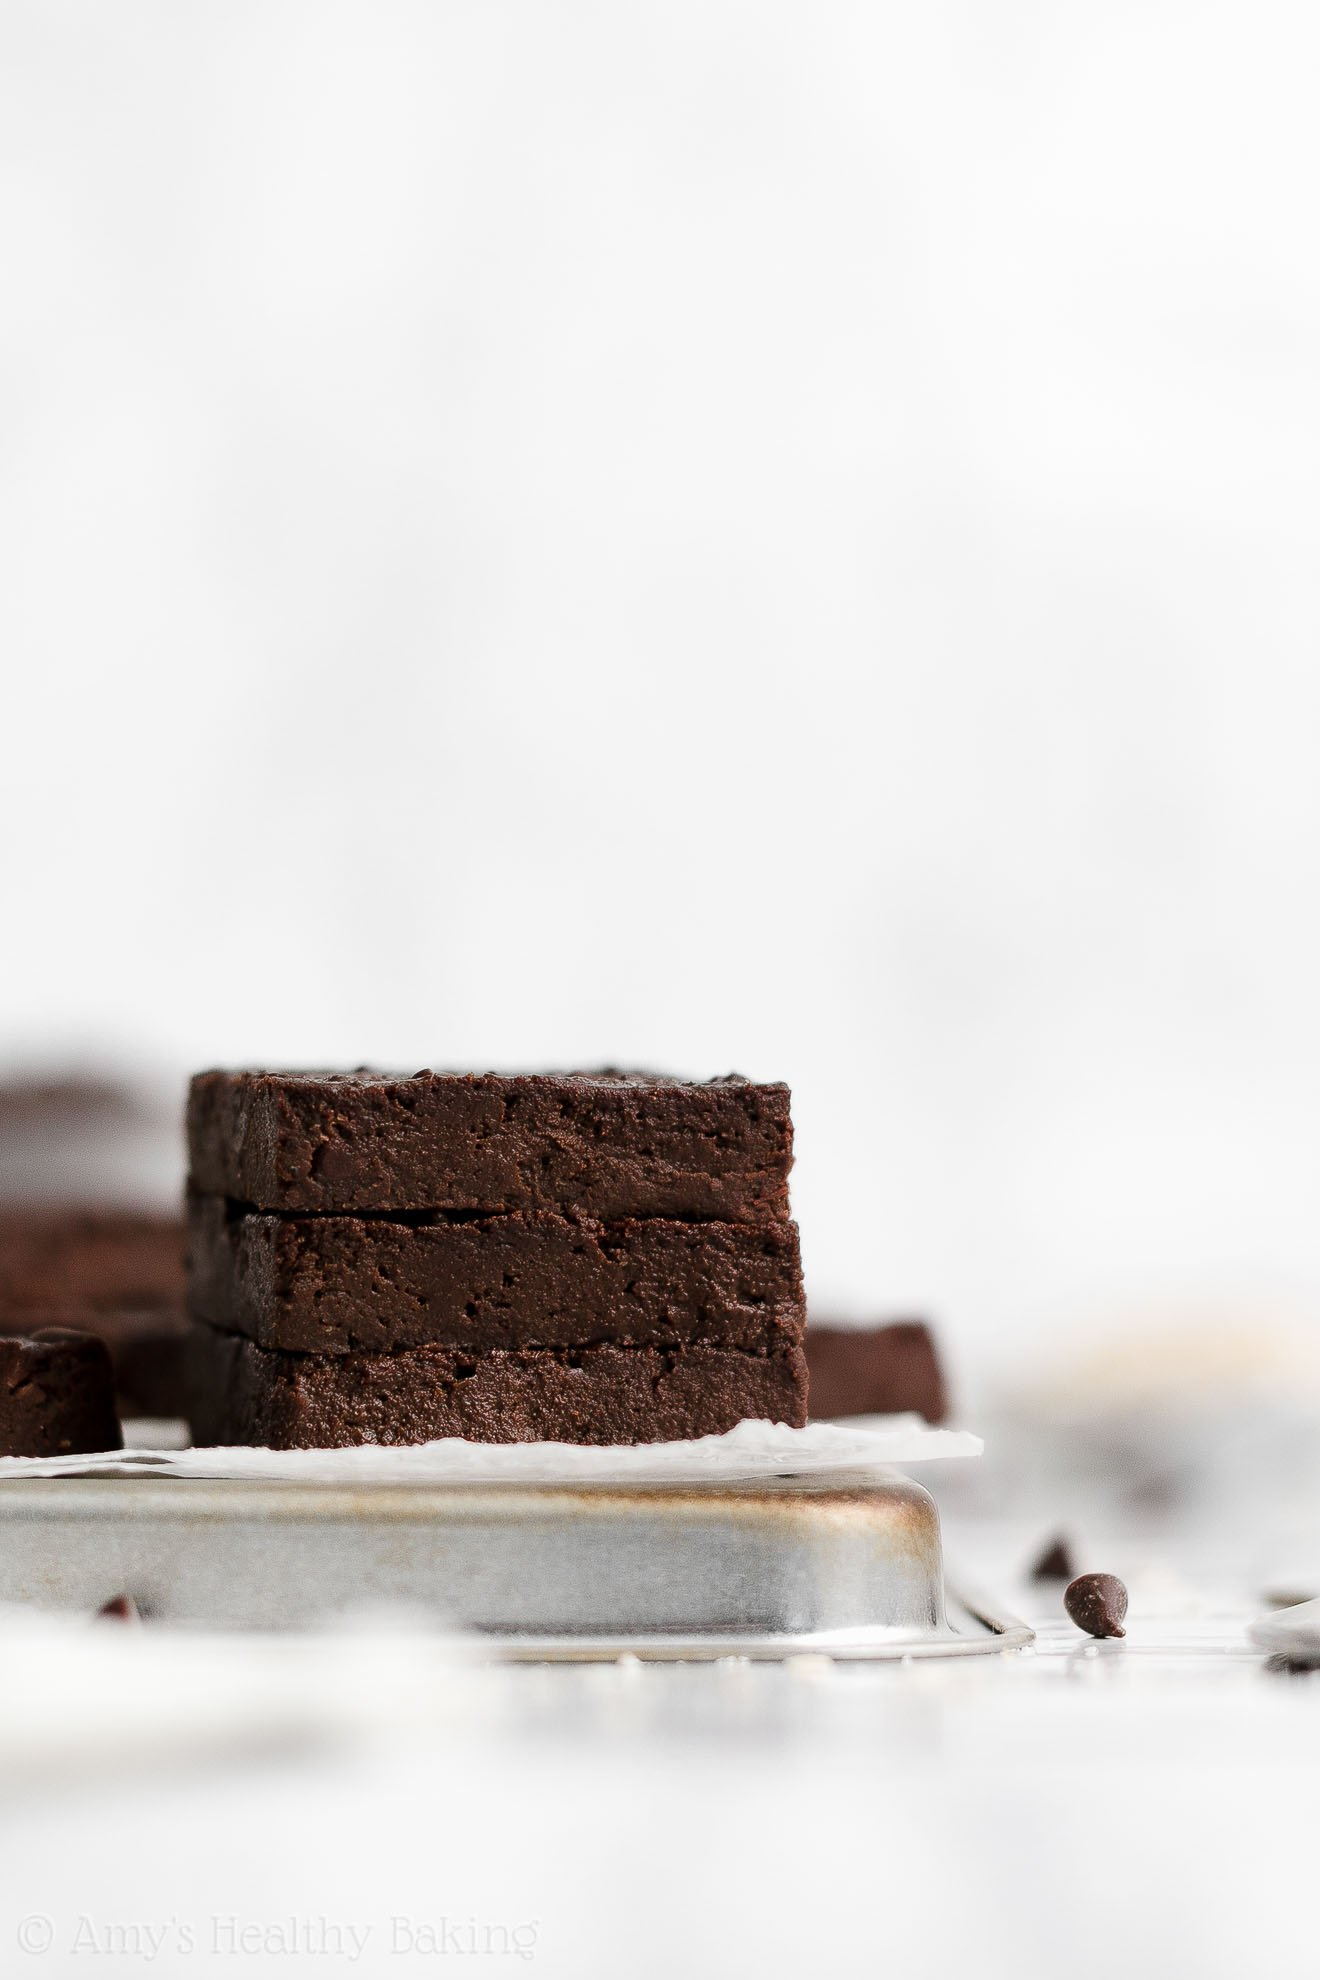 ULTIMATE Healthy Fudgy Flourless Gluten Free Dairy Free Brownies Without Eggs